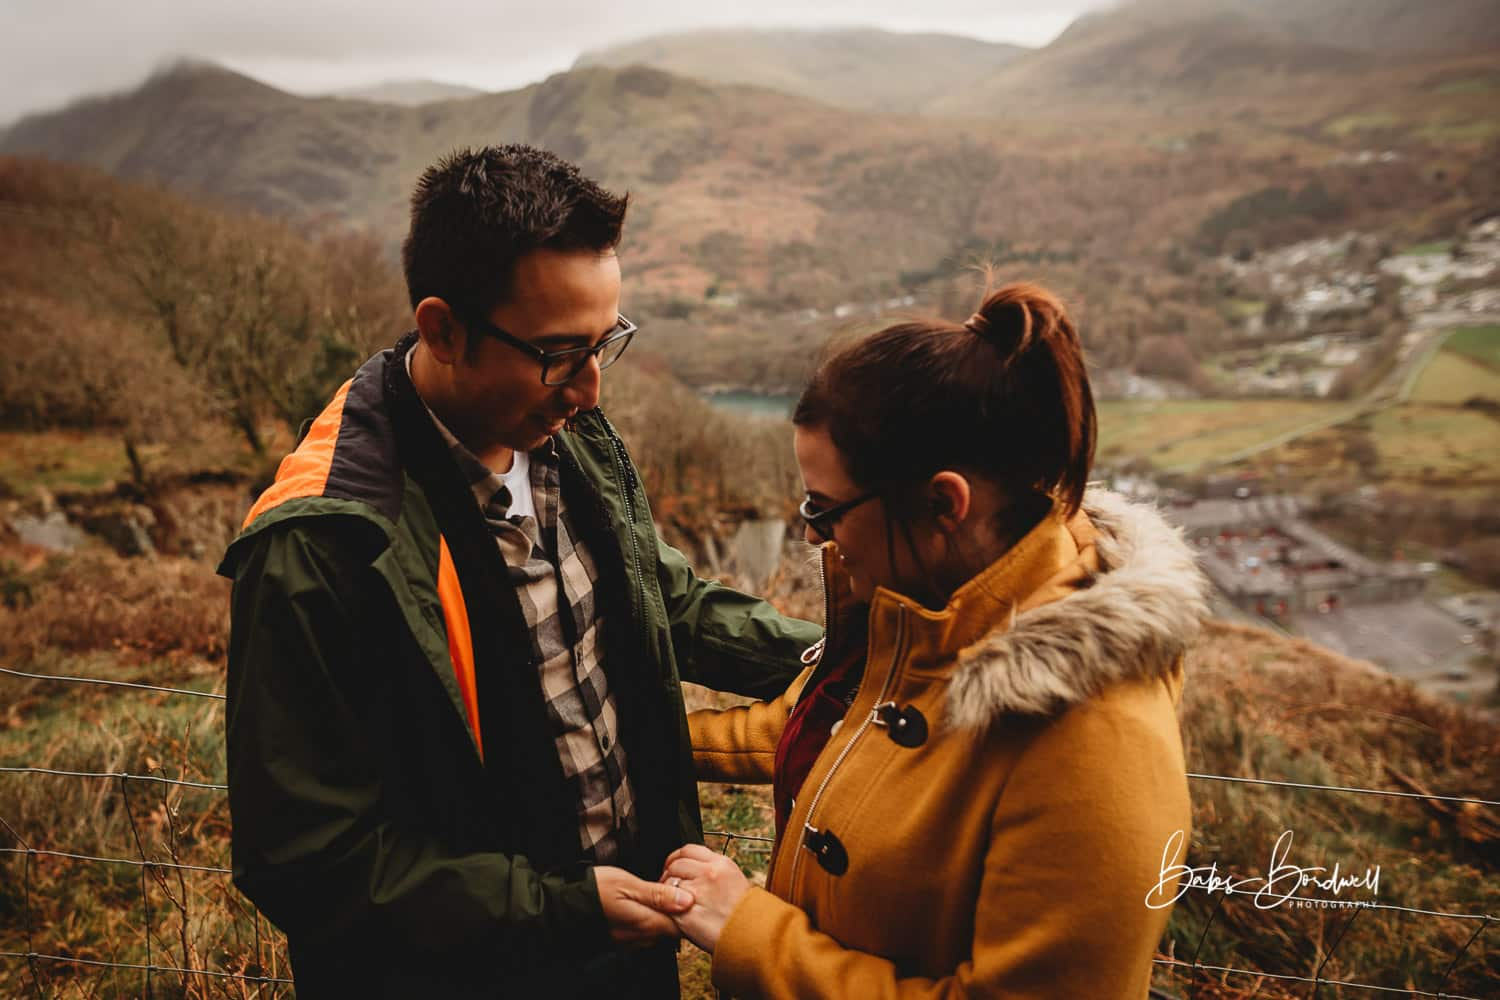 engaged couple looking at engagement ring on girl's hand against a mountainous Snowdonia backdrop